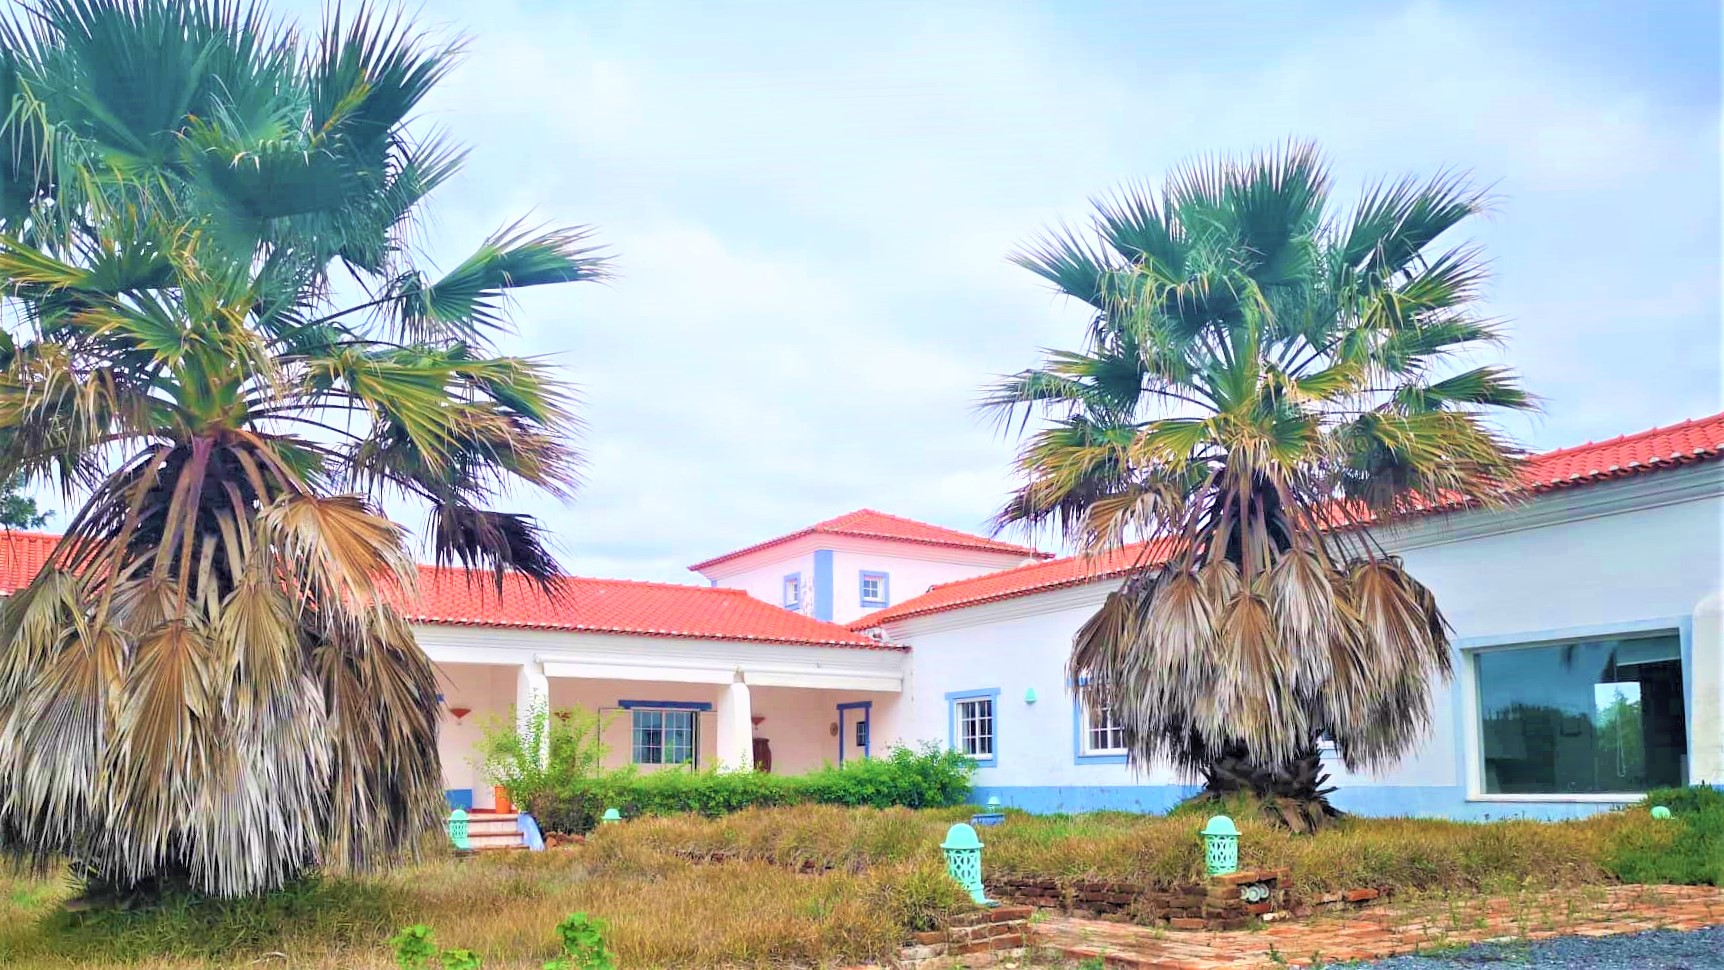 Typical Alentejo villa in excellent habitability conditions, 2.4 hectares of flat land.